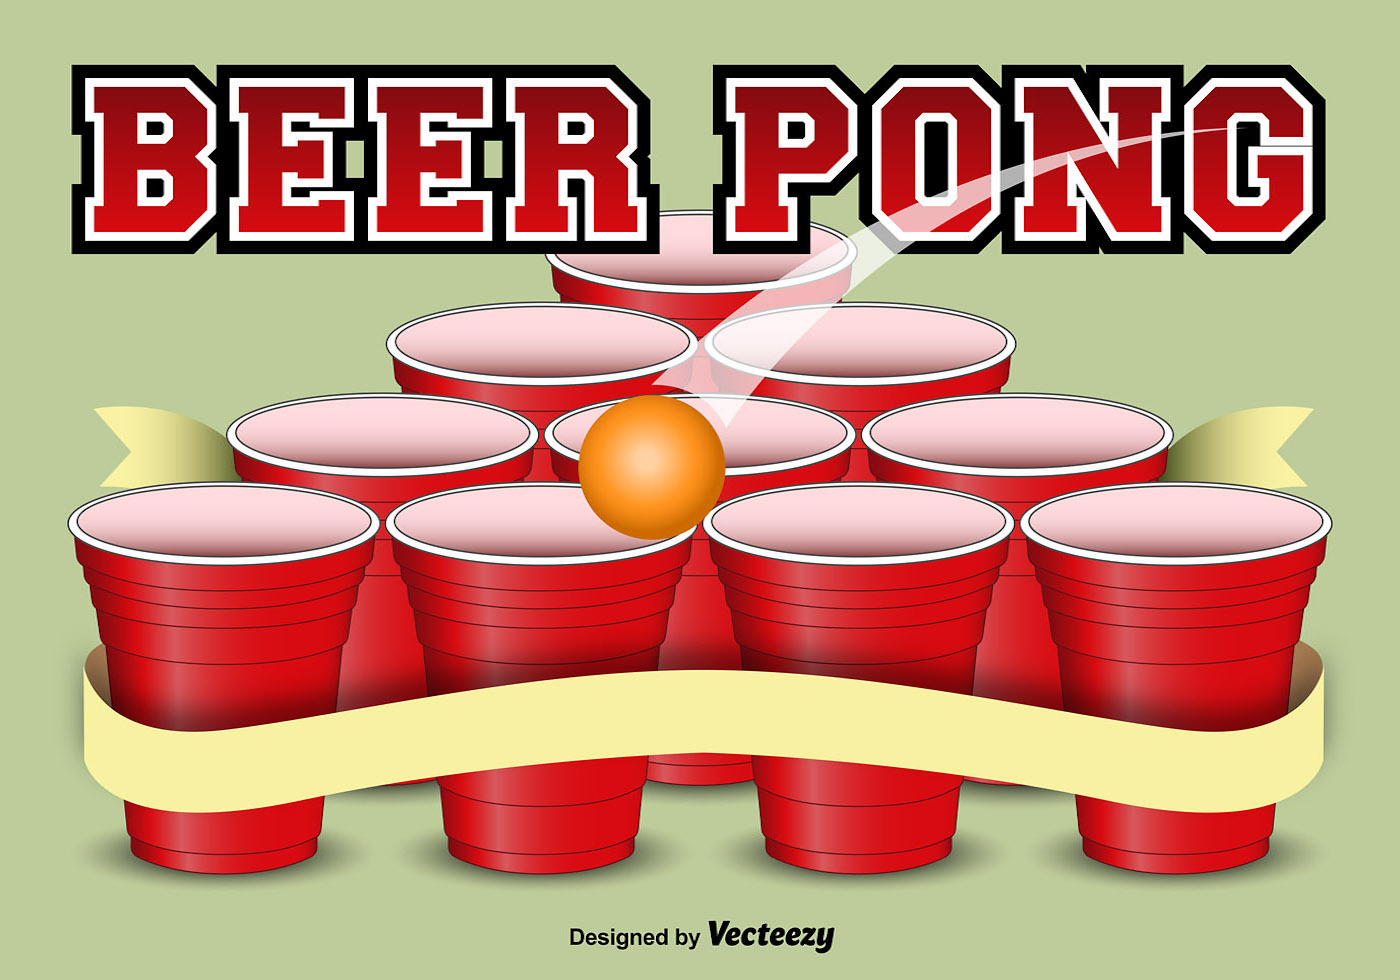 beer pong template background download free vector art  stock graphics   images beer glass clipart vector beer glass clip art free